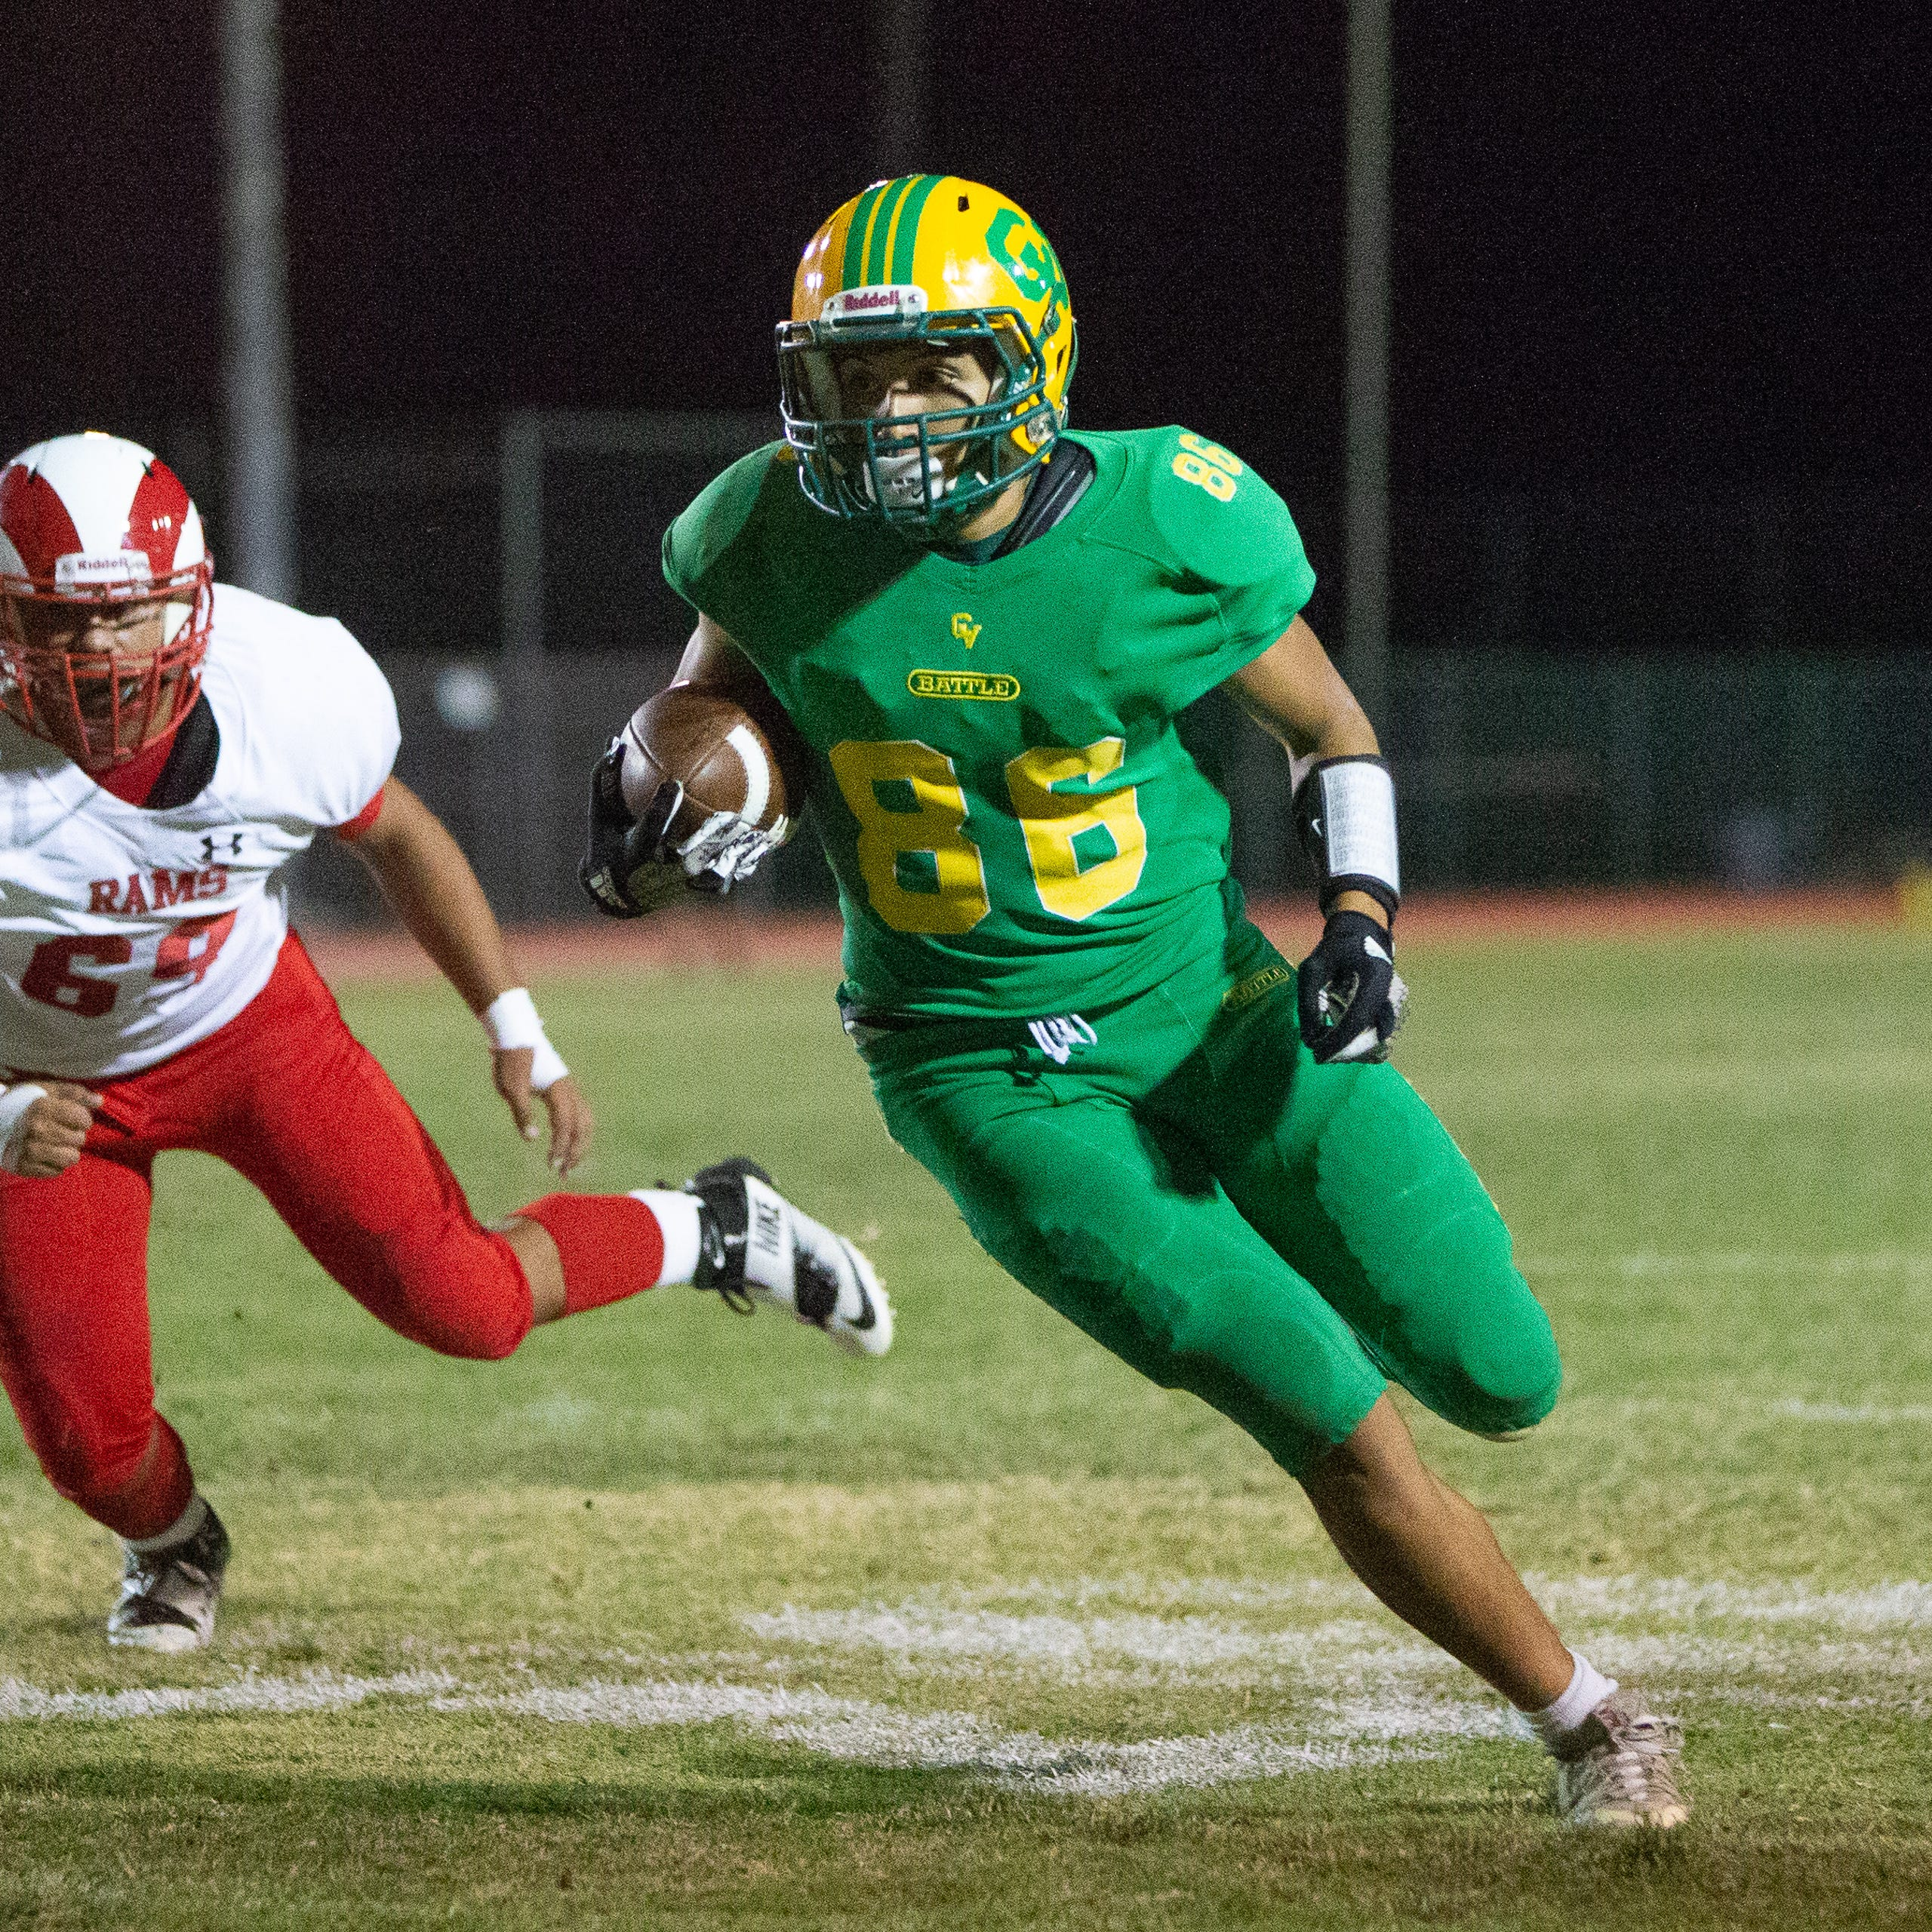 Friday's high school football scores: Palm Desert vs. La Quinta, CV vs. Indio